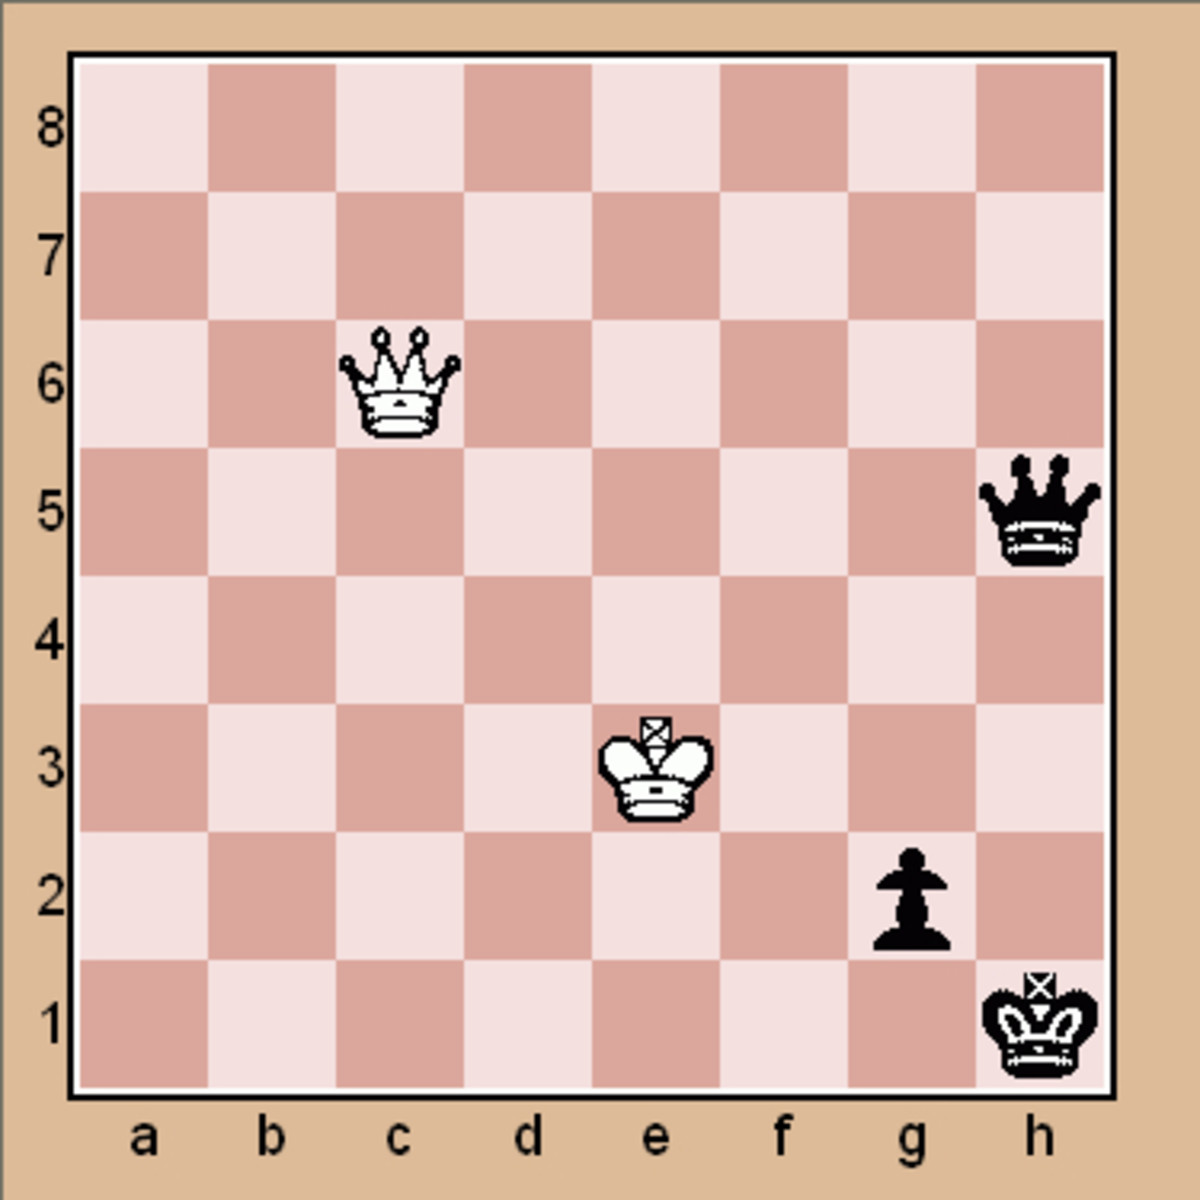 Please scroll down to see the endgame chess puzzles.